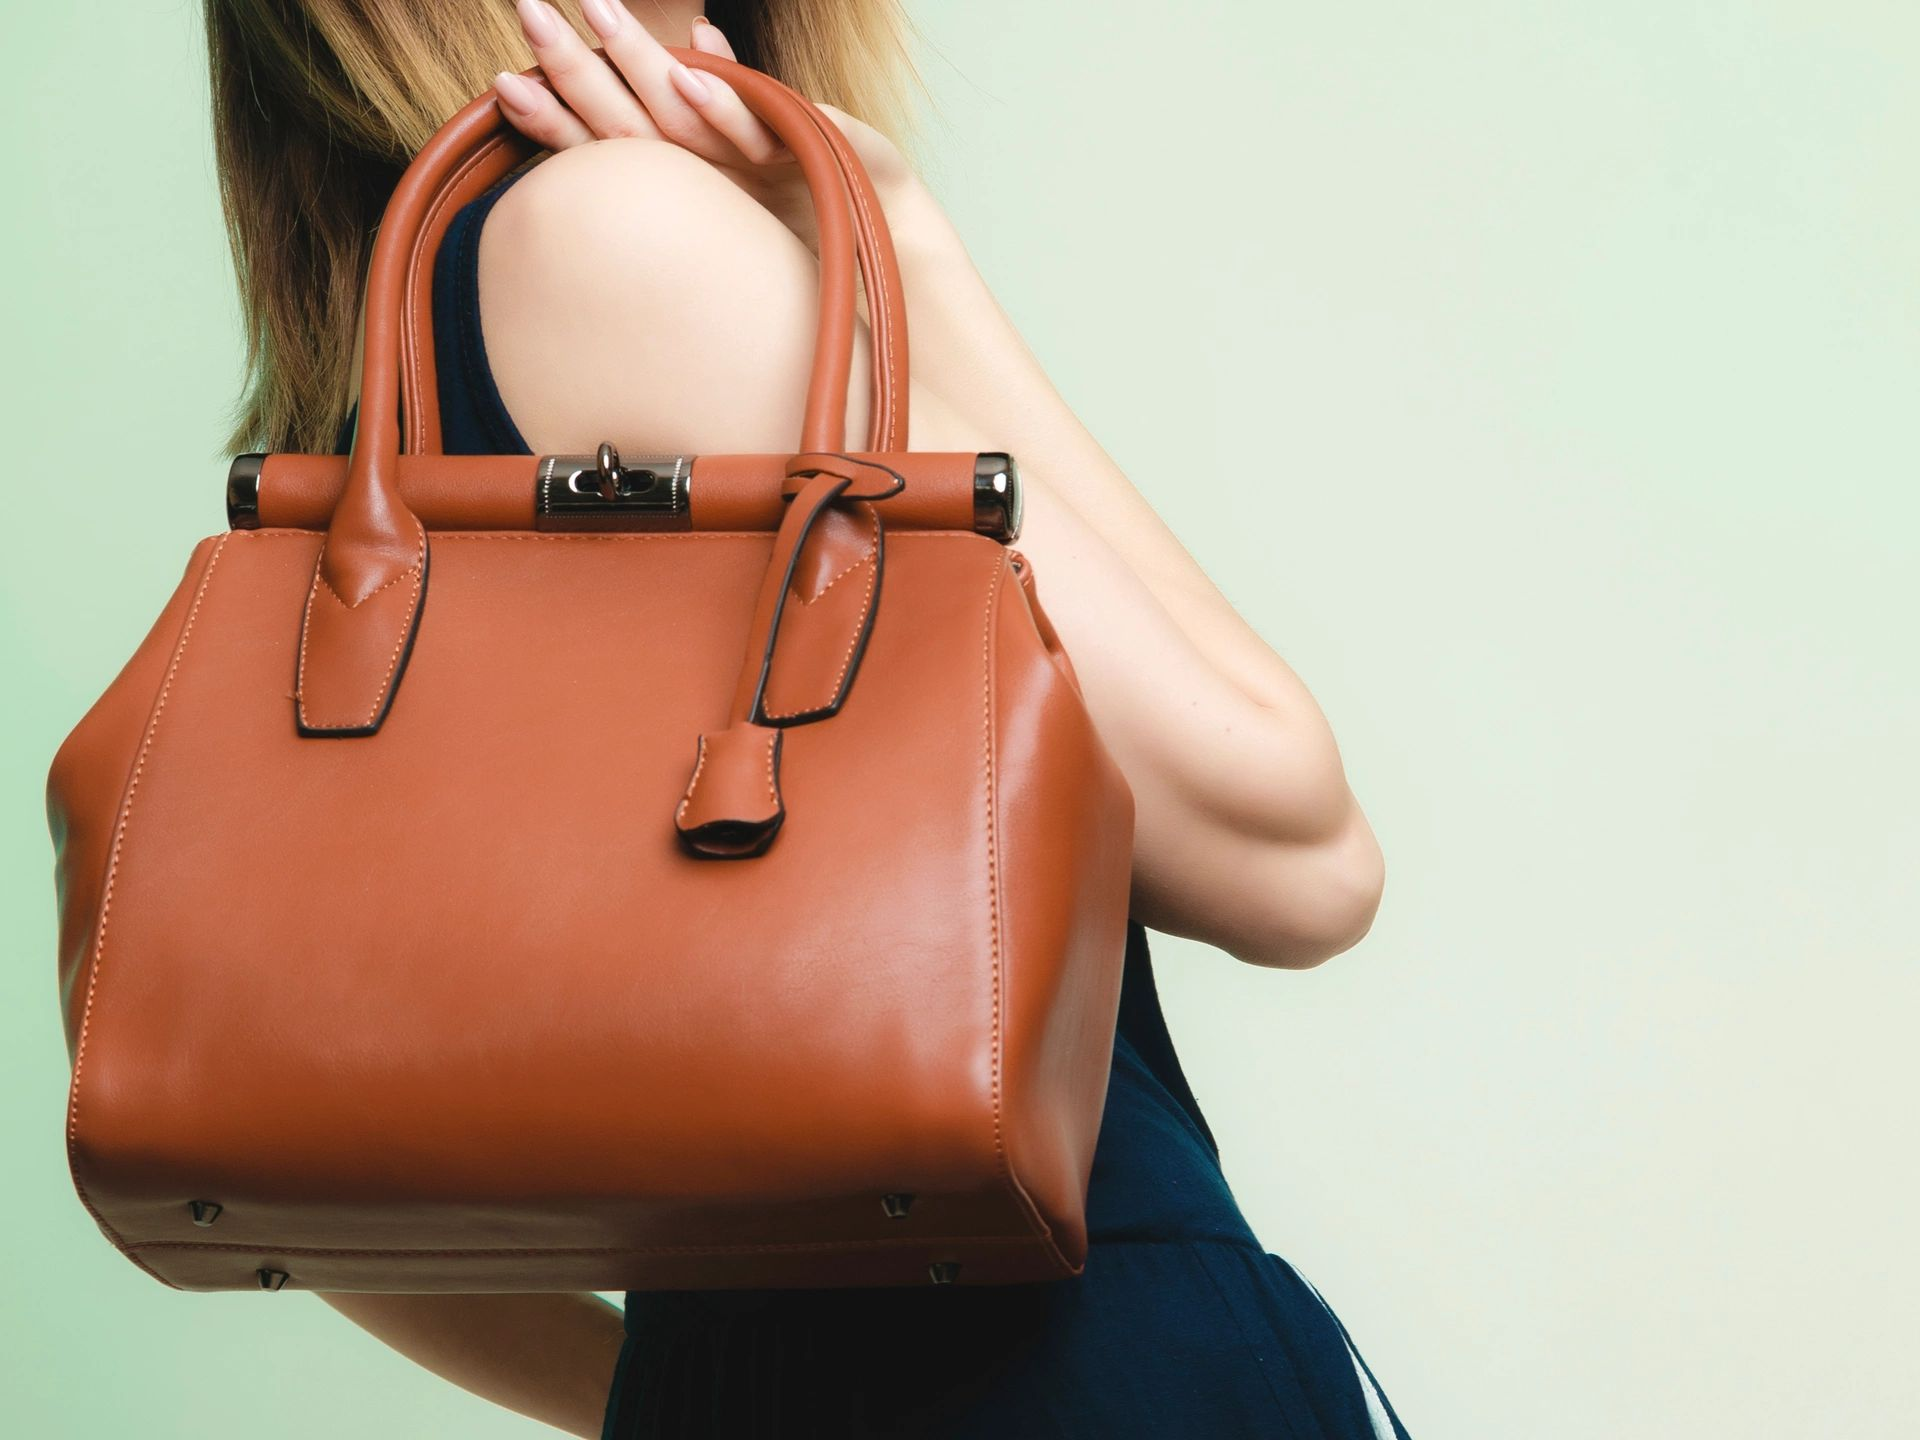 What's In the Bag? The Top 2015 Fashion Handbags Trends